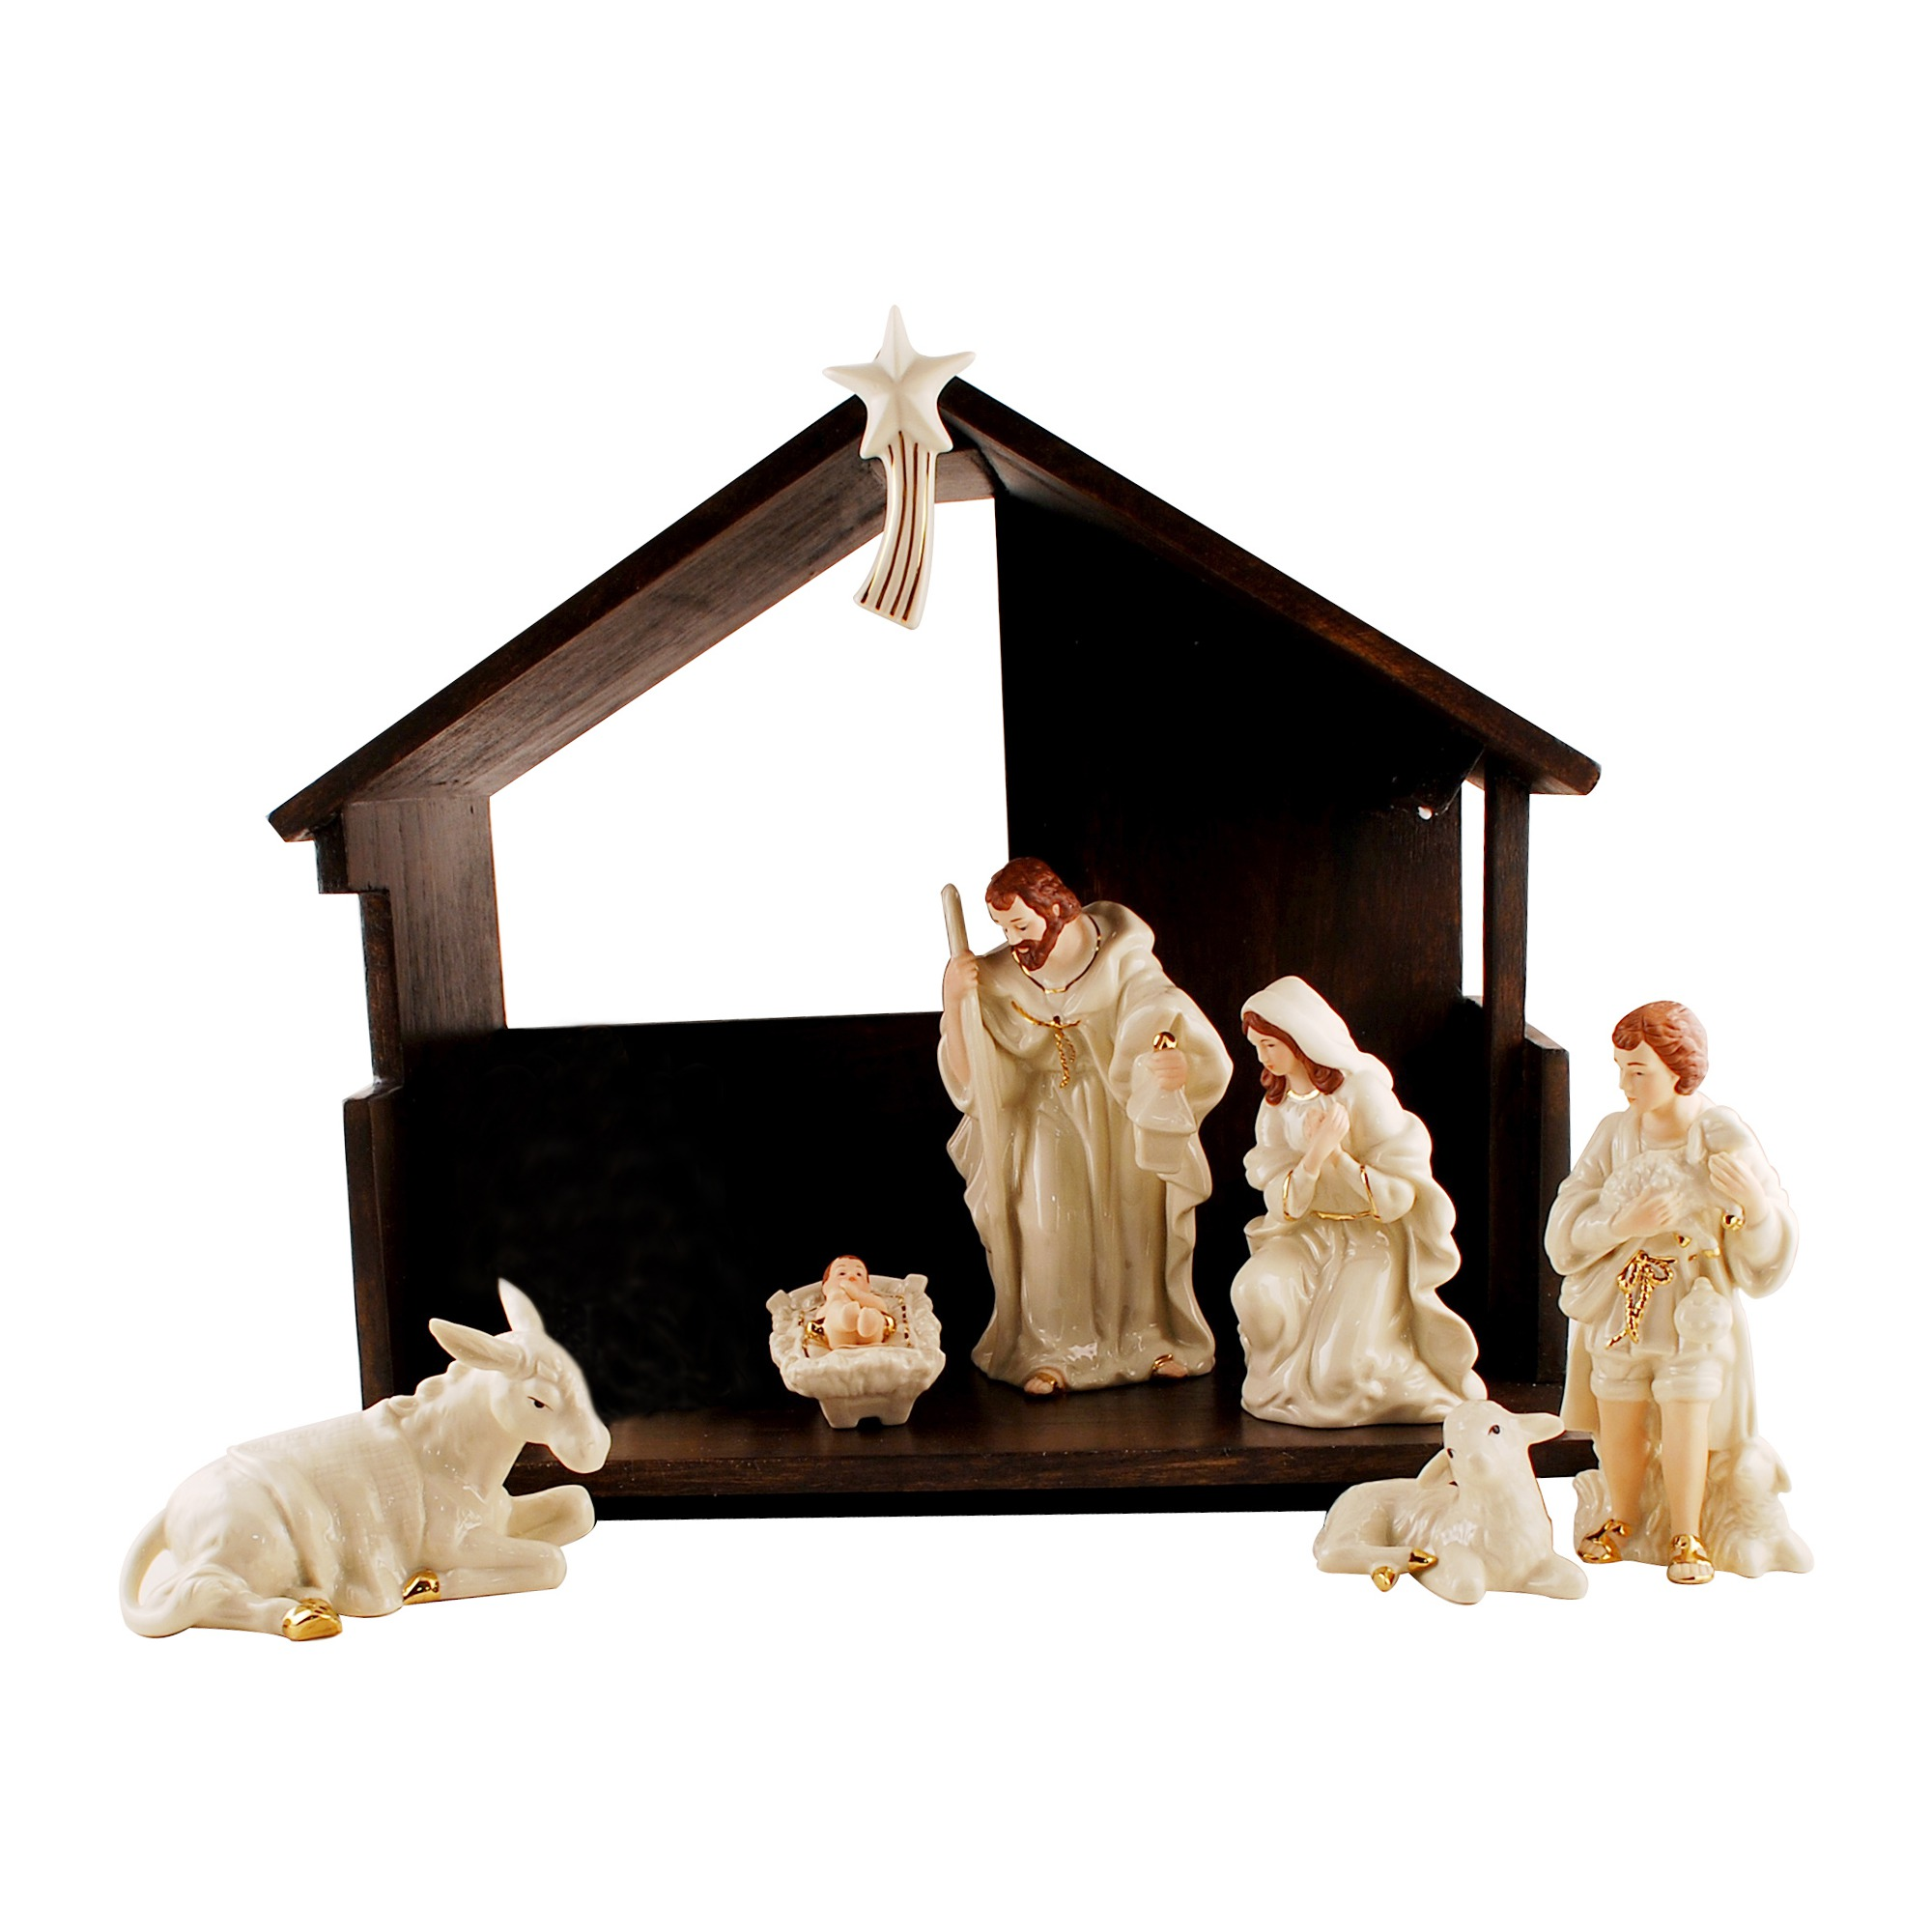 2000x2000 Belleek Classic Nativity Set The Catholic Company